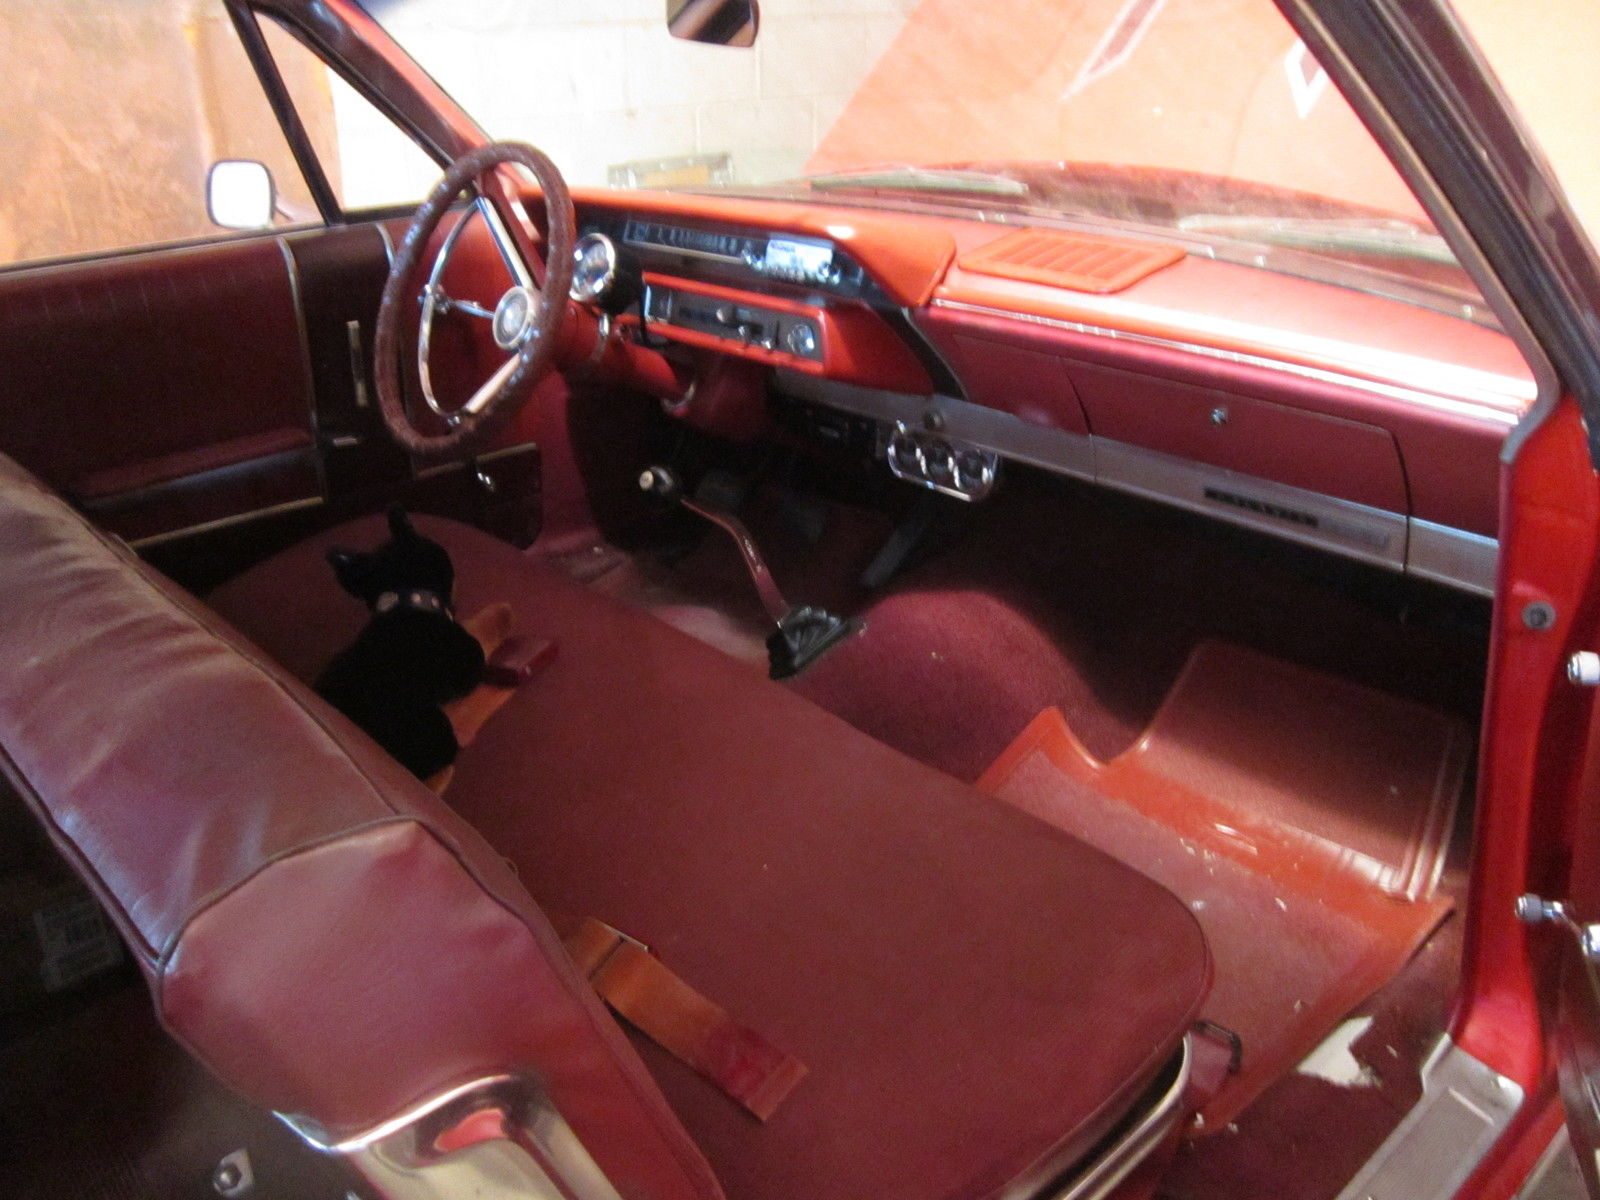 65 Mustang For Sale >> 1966 Ford Galaxie 500 Fastback, Red, Manual 3-Speed Transmission, 2-Door - Classic Ford Galaxie ...